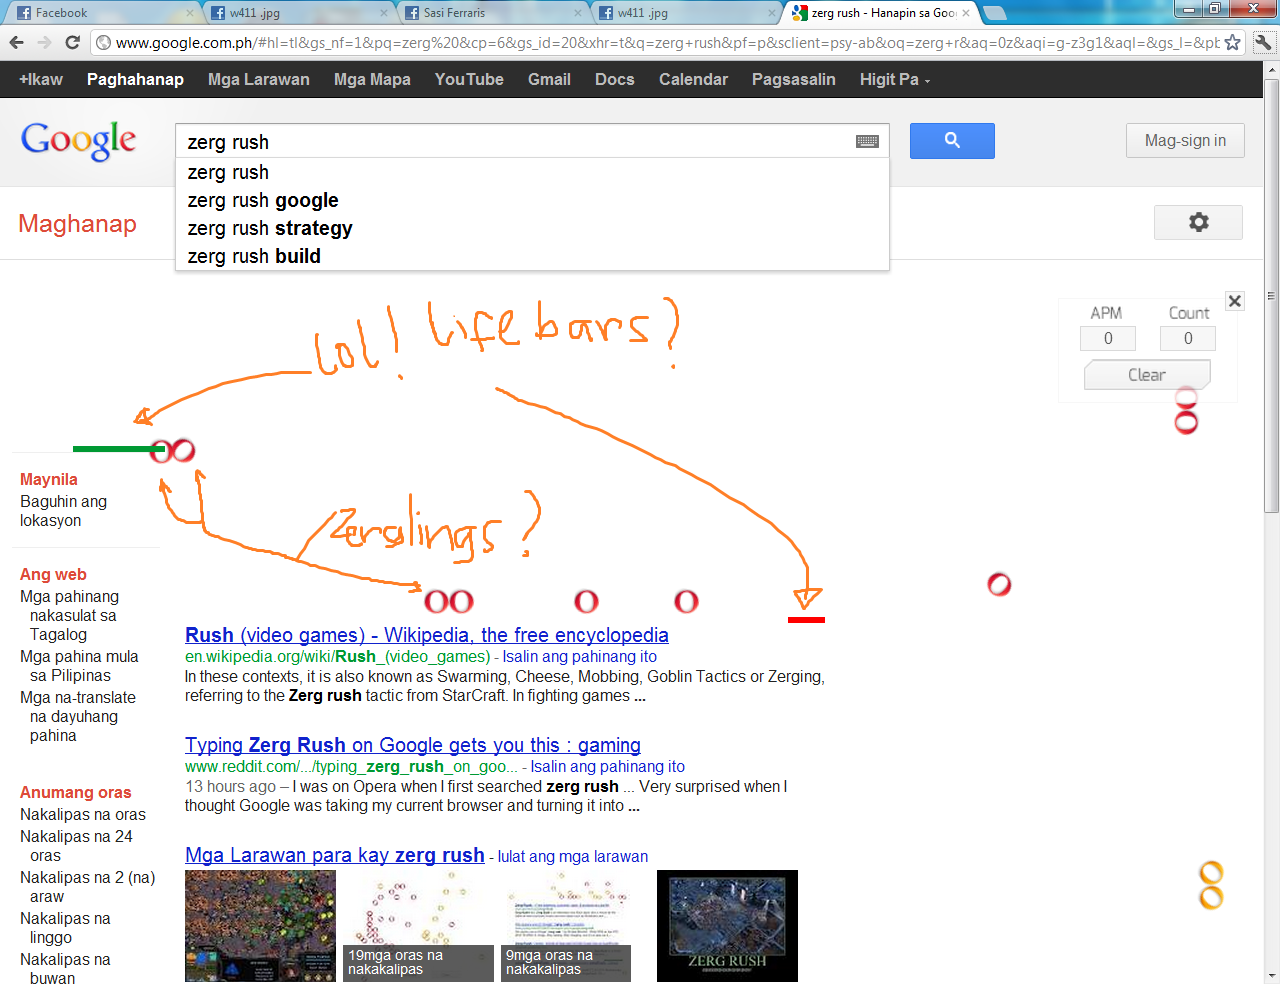 Zerg rush - The Gamer Joke Is Similar To An Earlier Google Easter Egg Entering Do A Barrel Roll As A Google Search Prompted Computer Screens To Do A 360 Degree